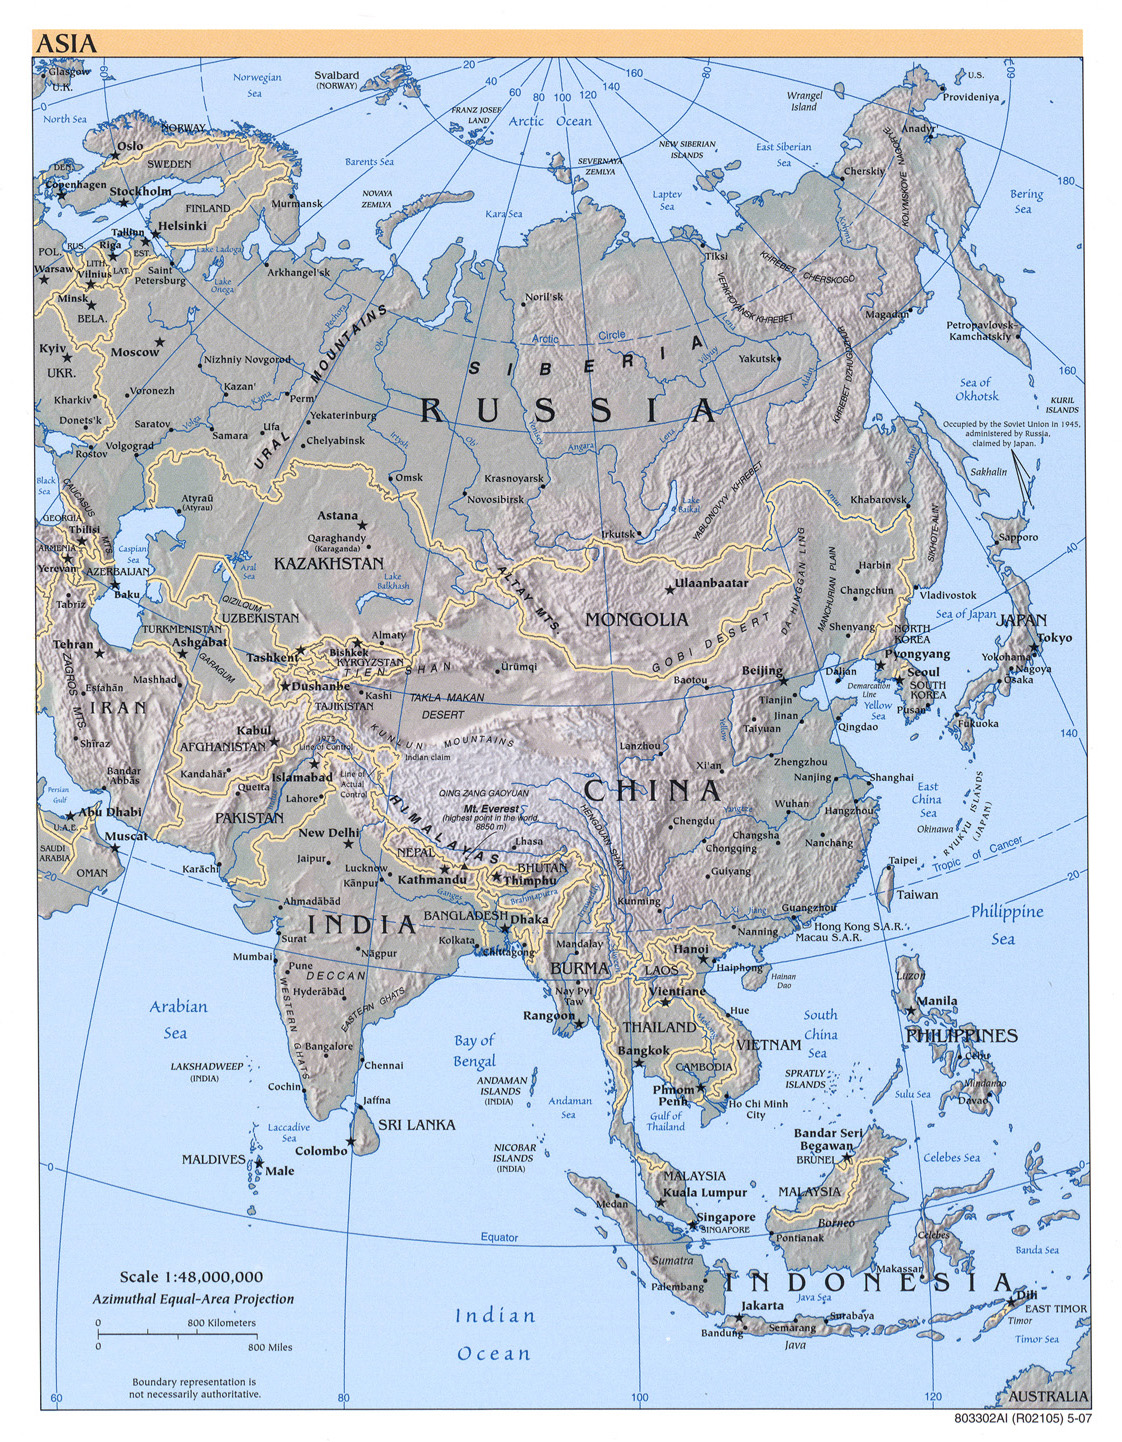 Russia And Eurasian Republics Map : russia, eurasian, republics, Russia, Former, Soviet, Republics, Perry-Castañeda, Collection, Library, Online